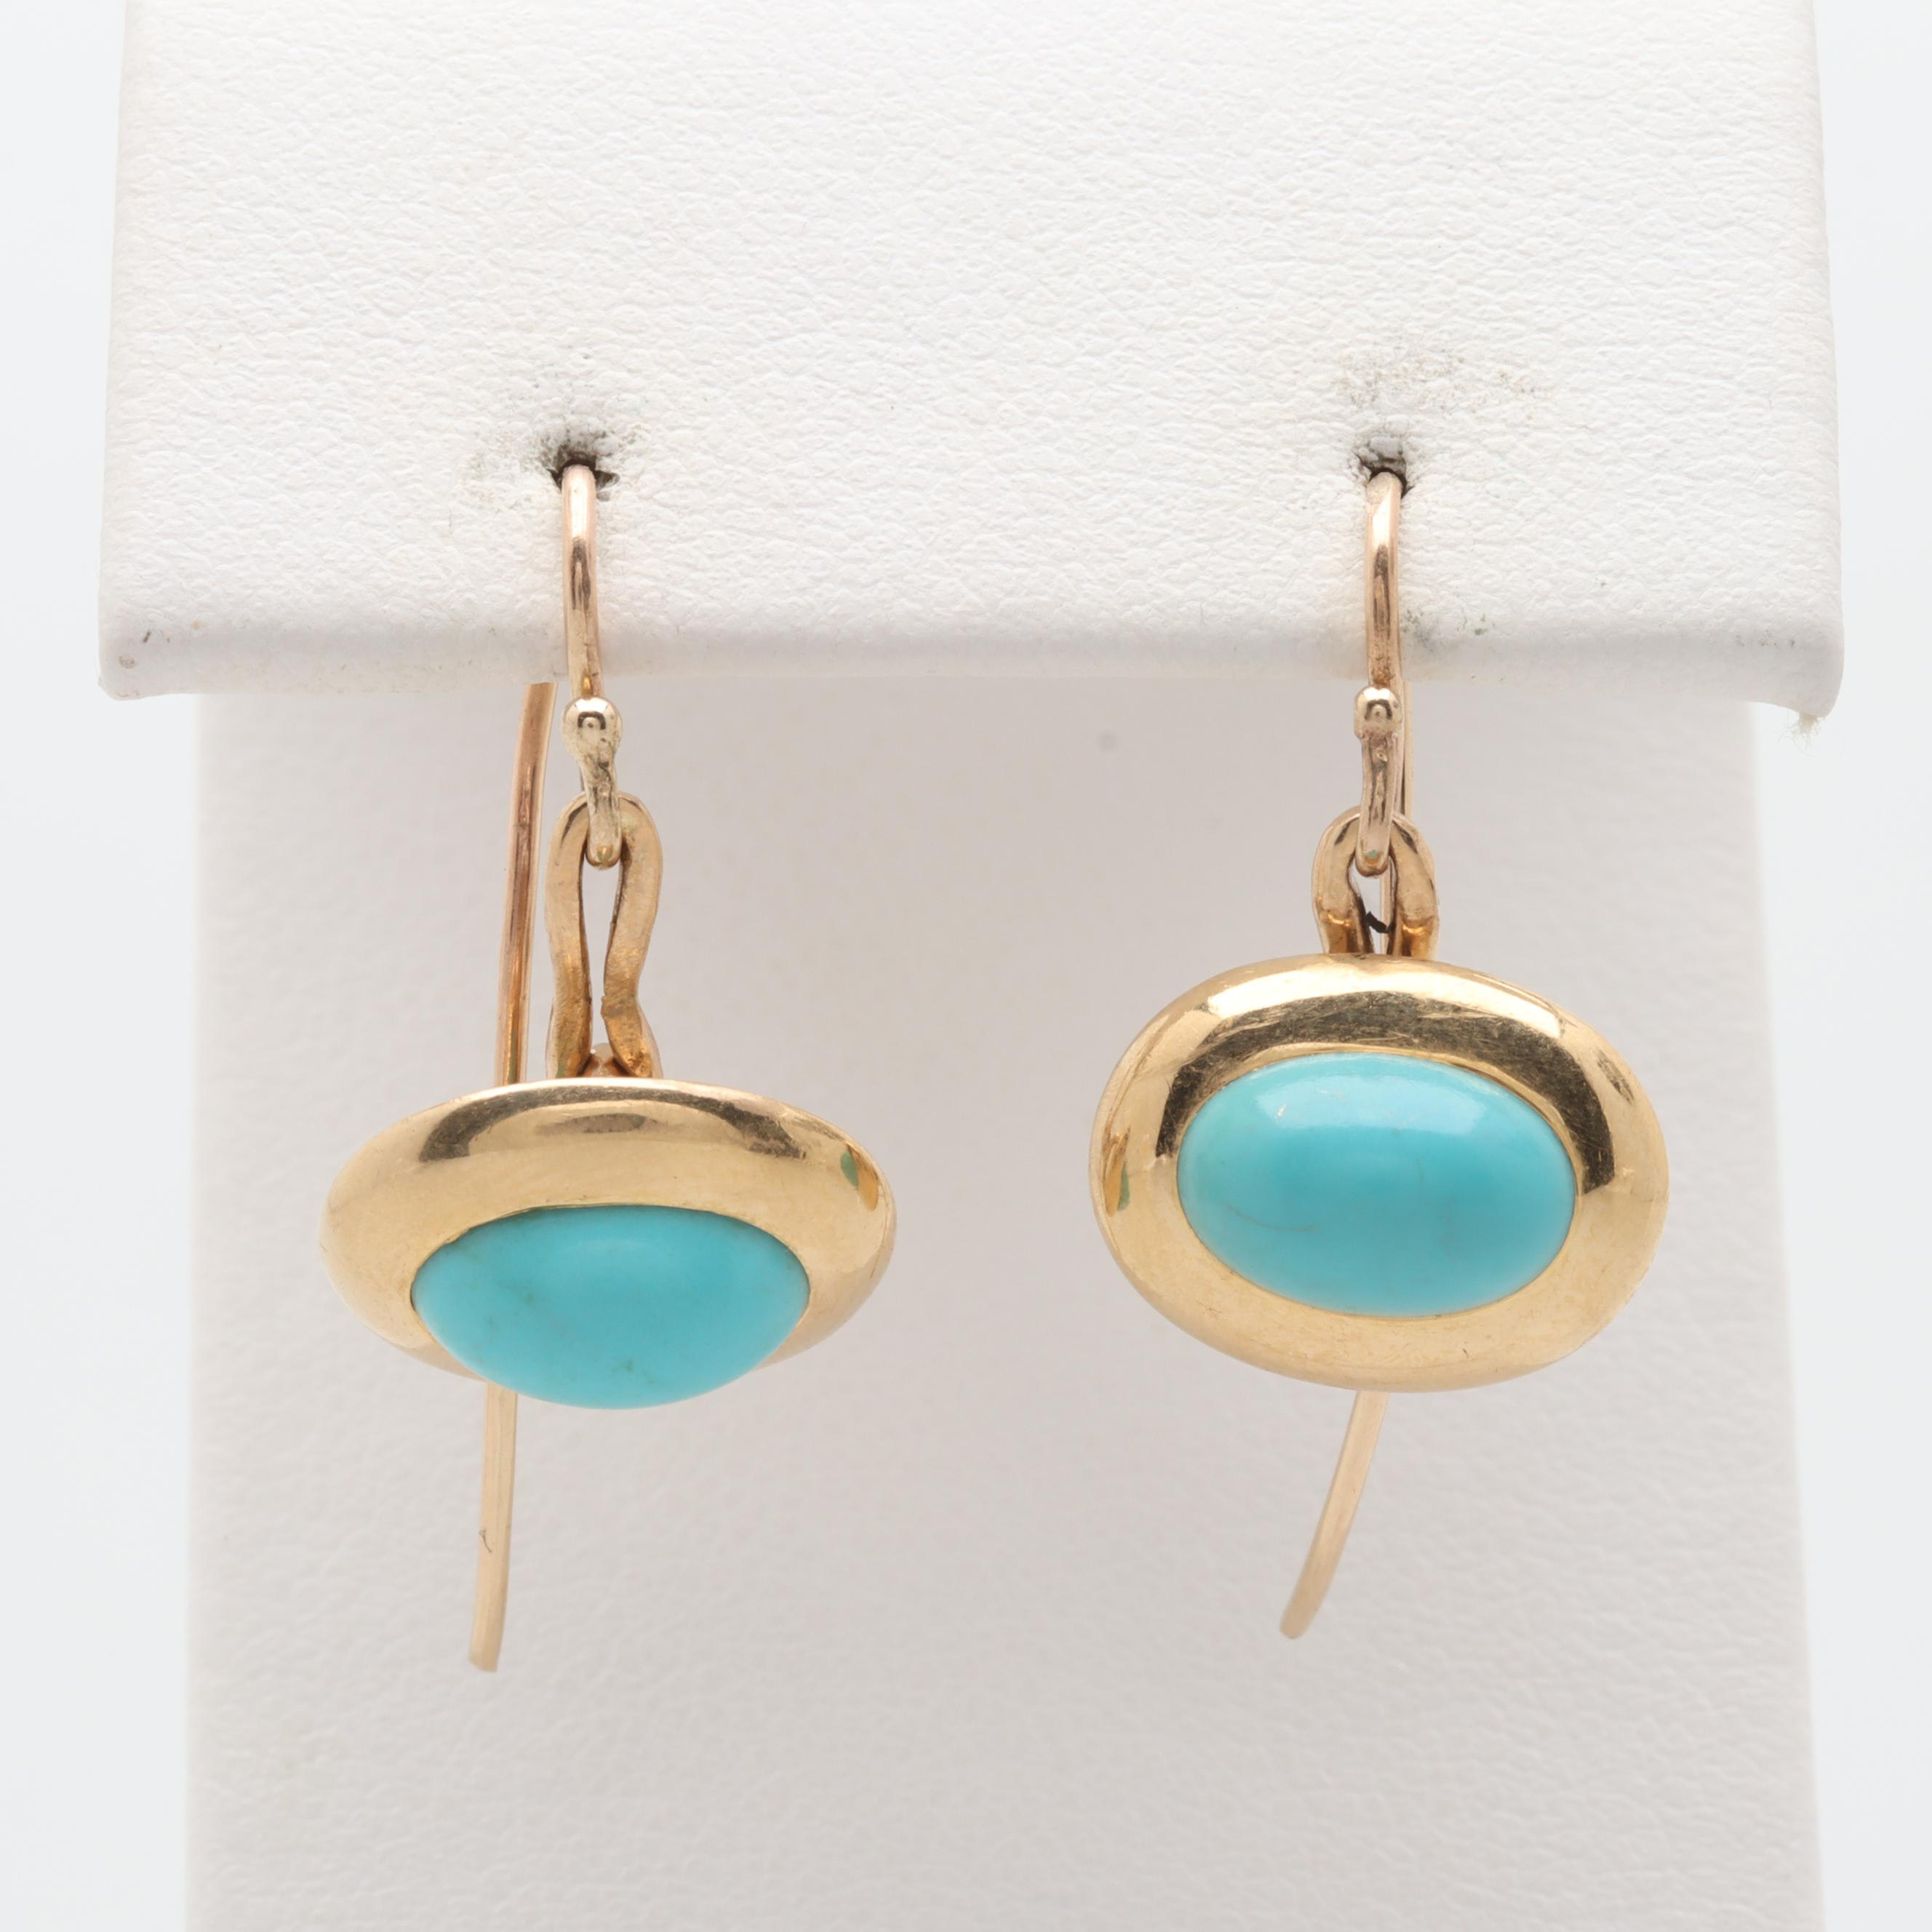 14K and 18K Yellow Gold Howlite Earrings